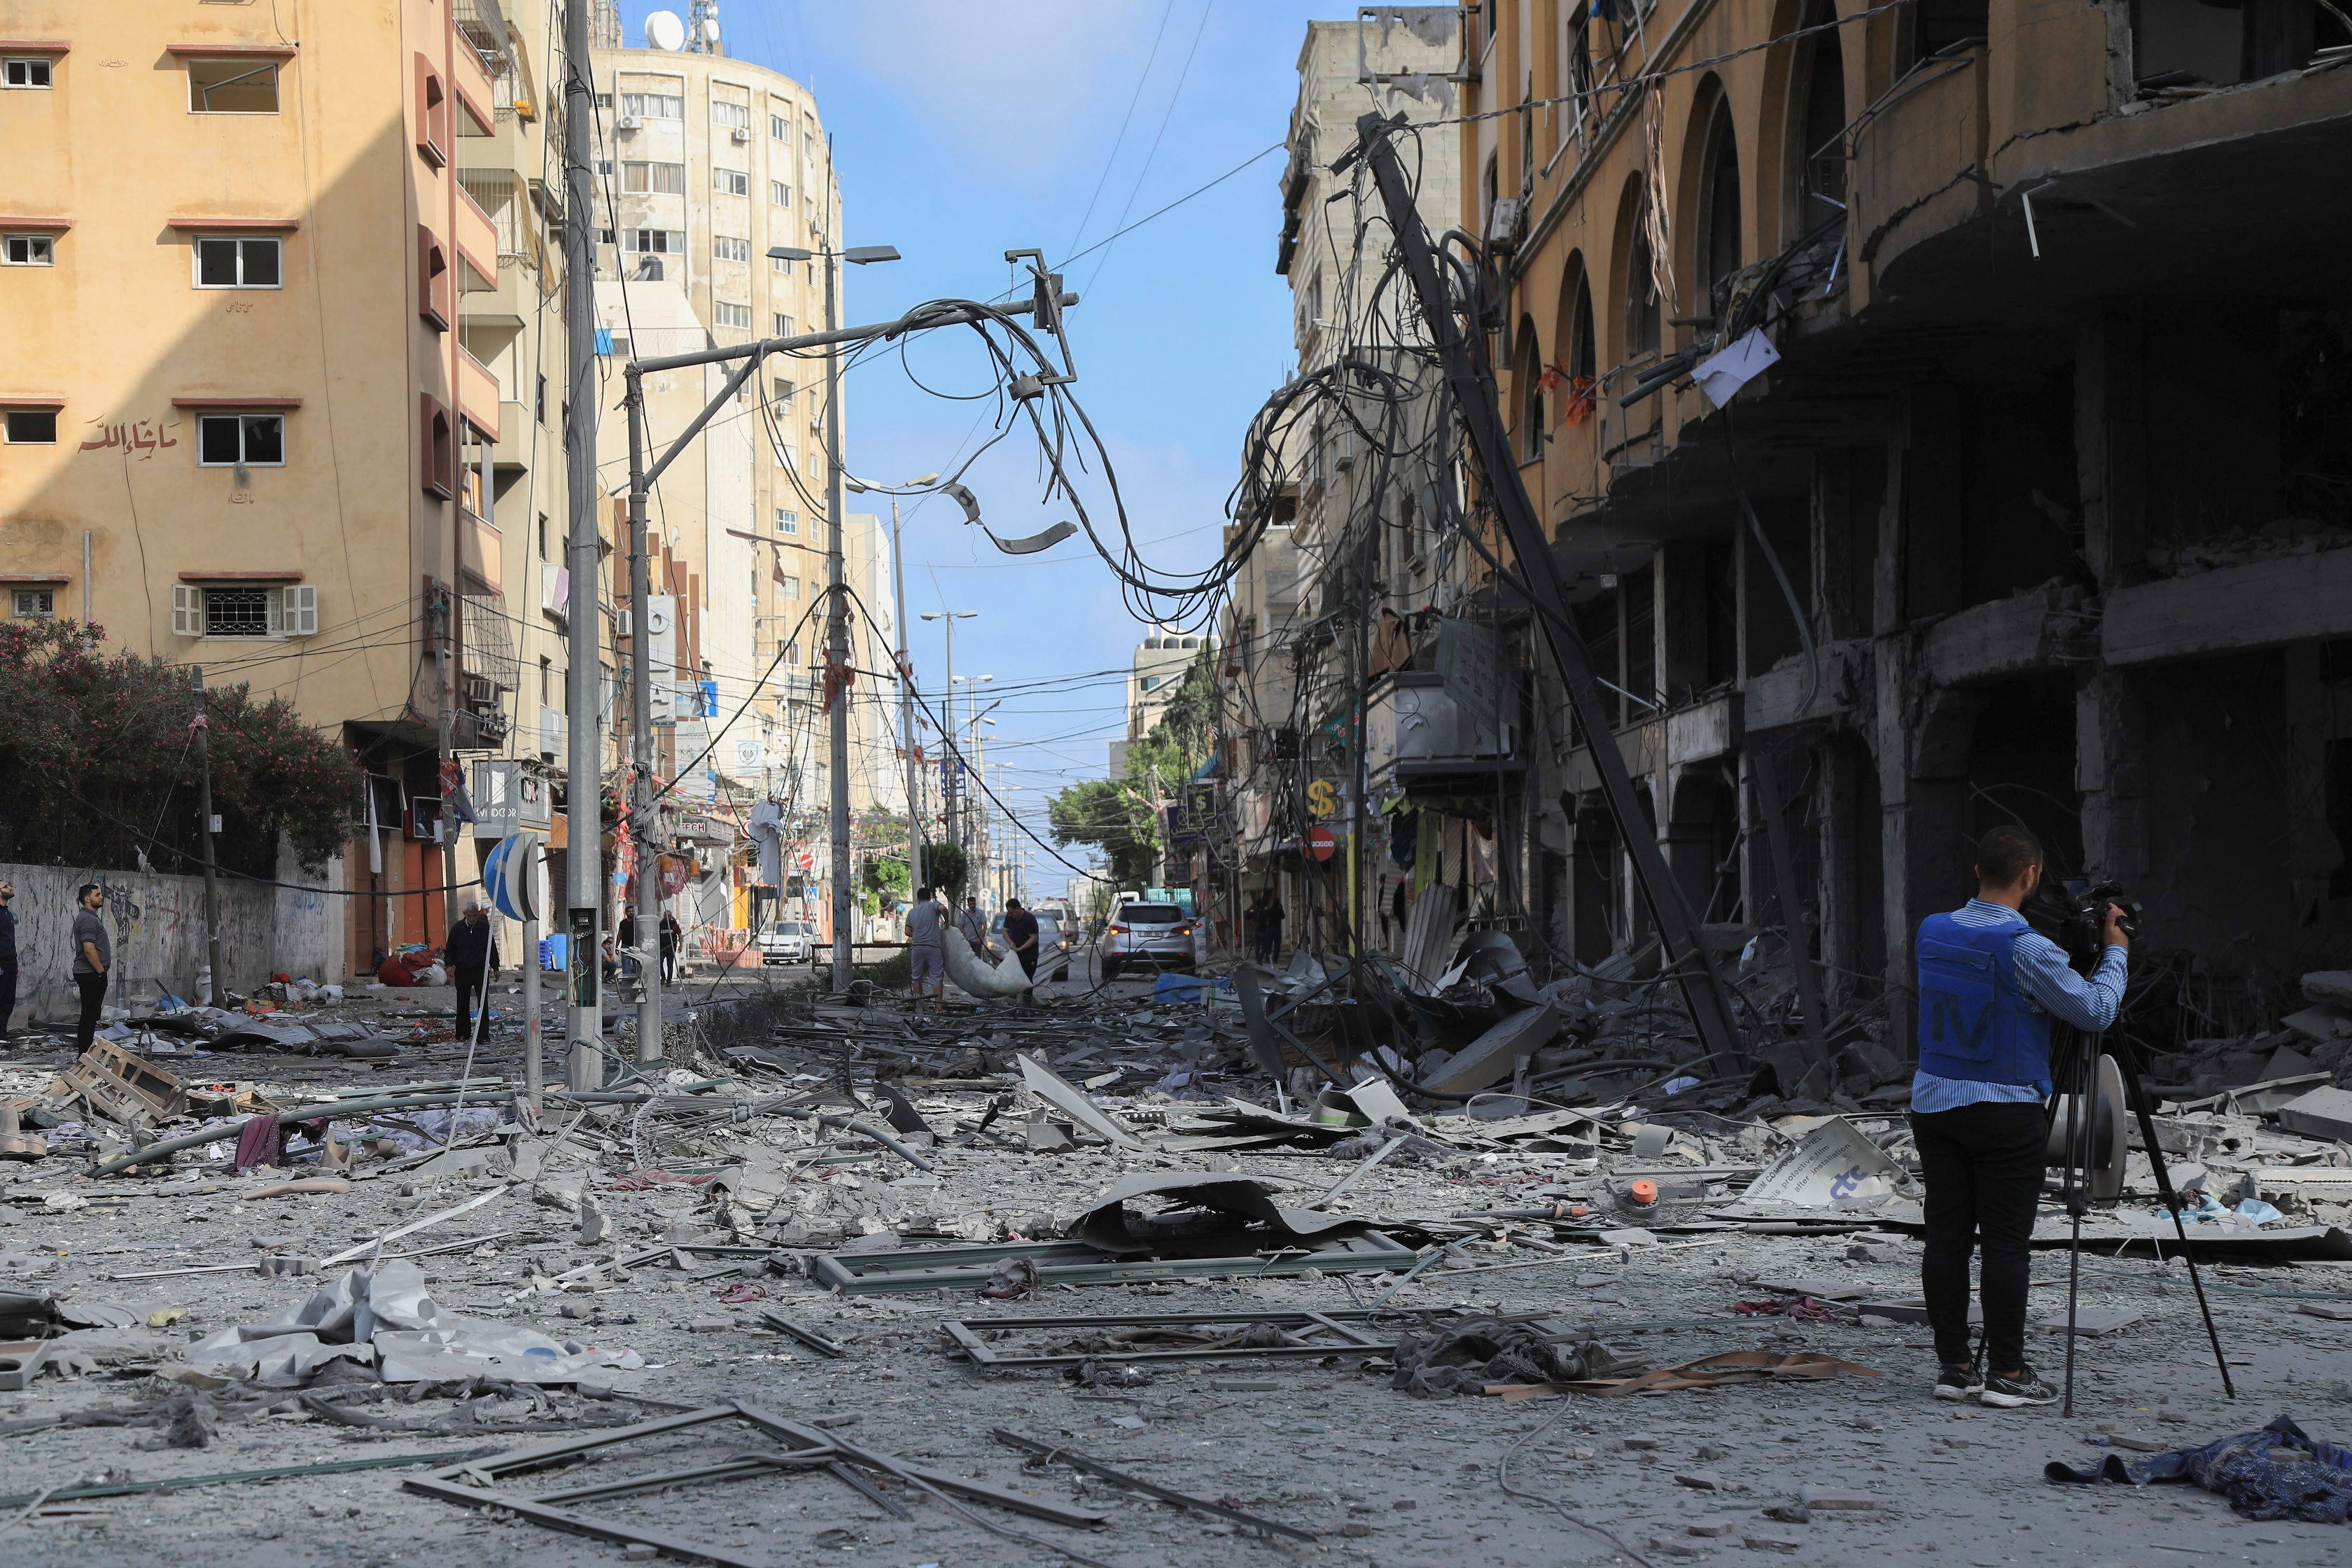 Press House publishes a newsletter on Violations against Media Freedoms in the Gaza Strip during the current escalation